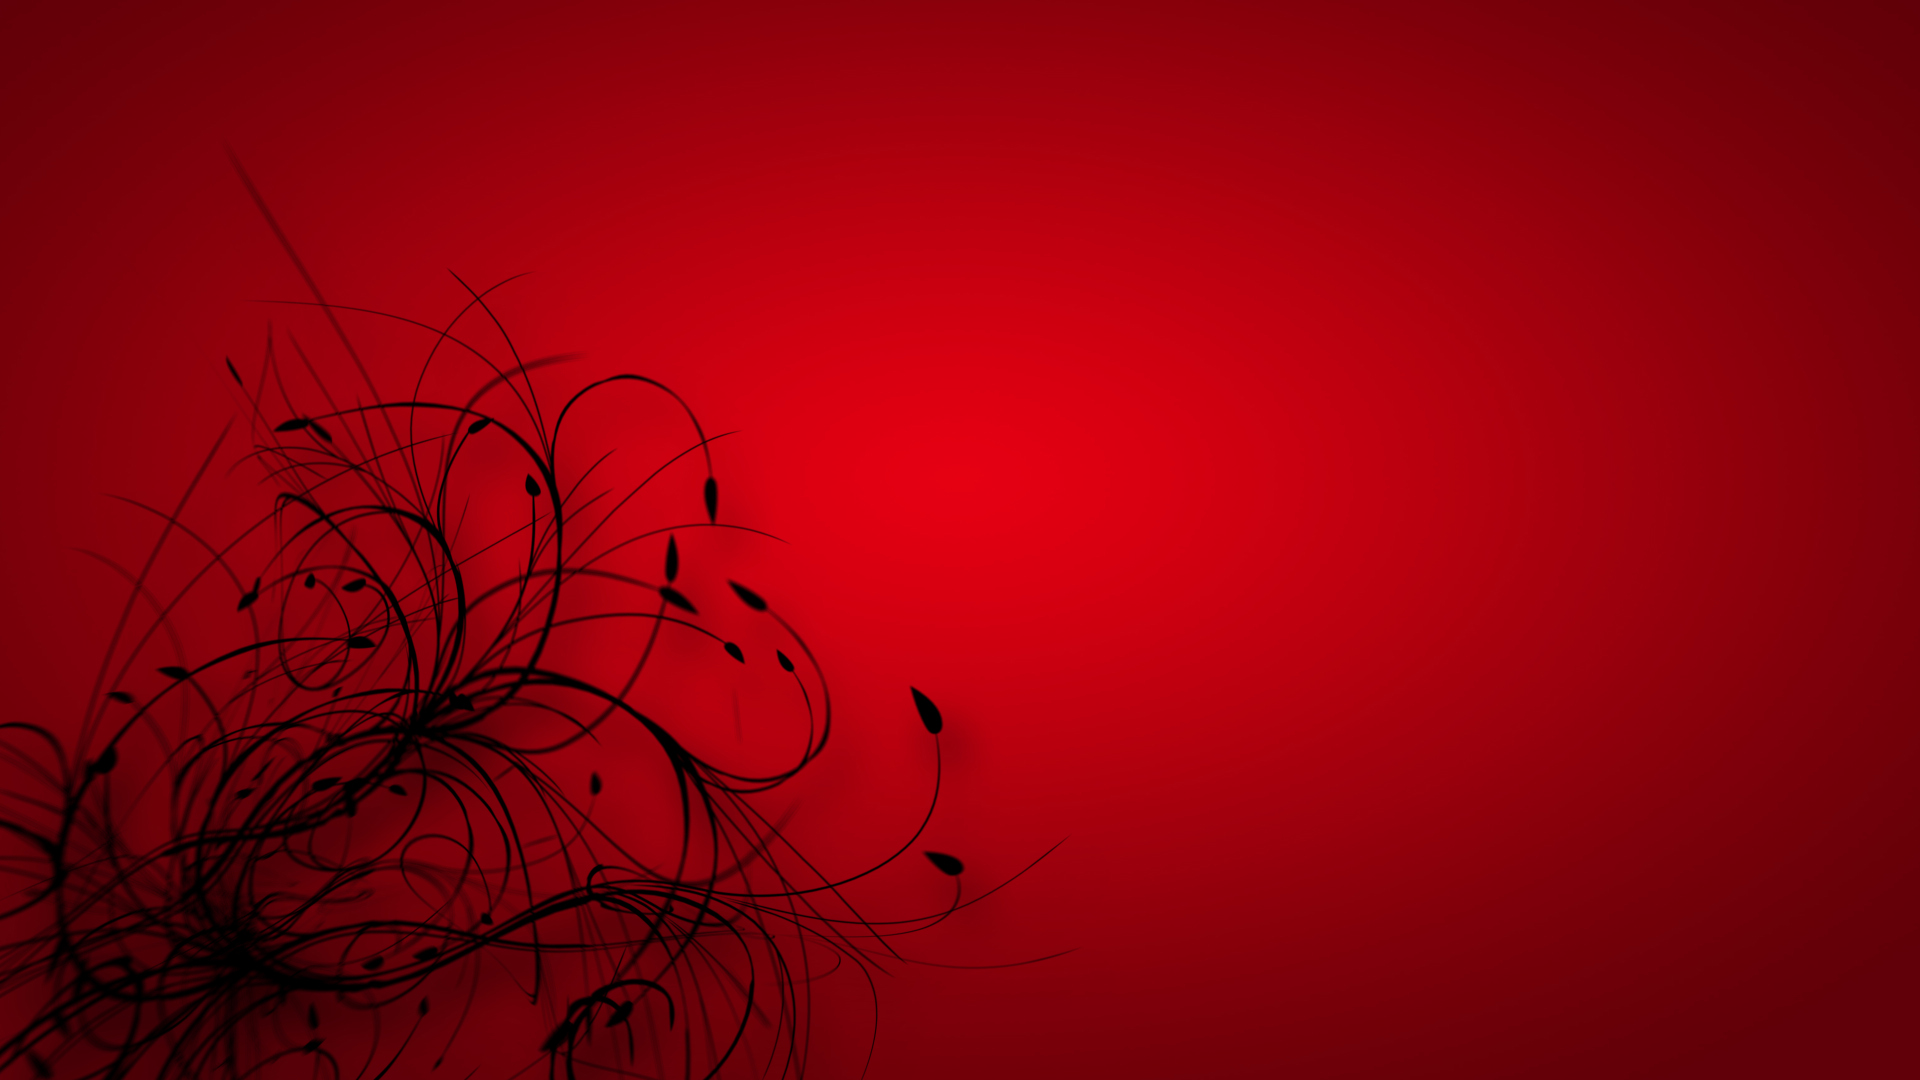 Cool red and black backgrounds